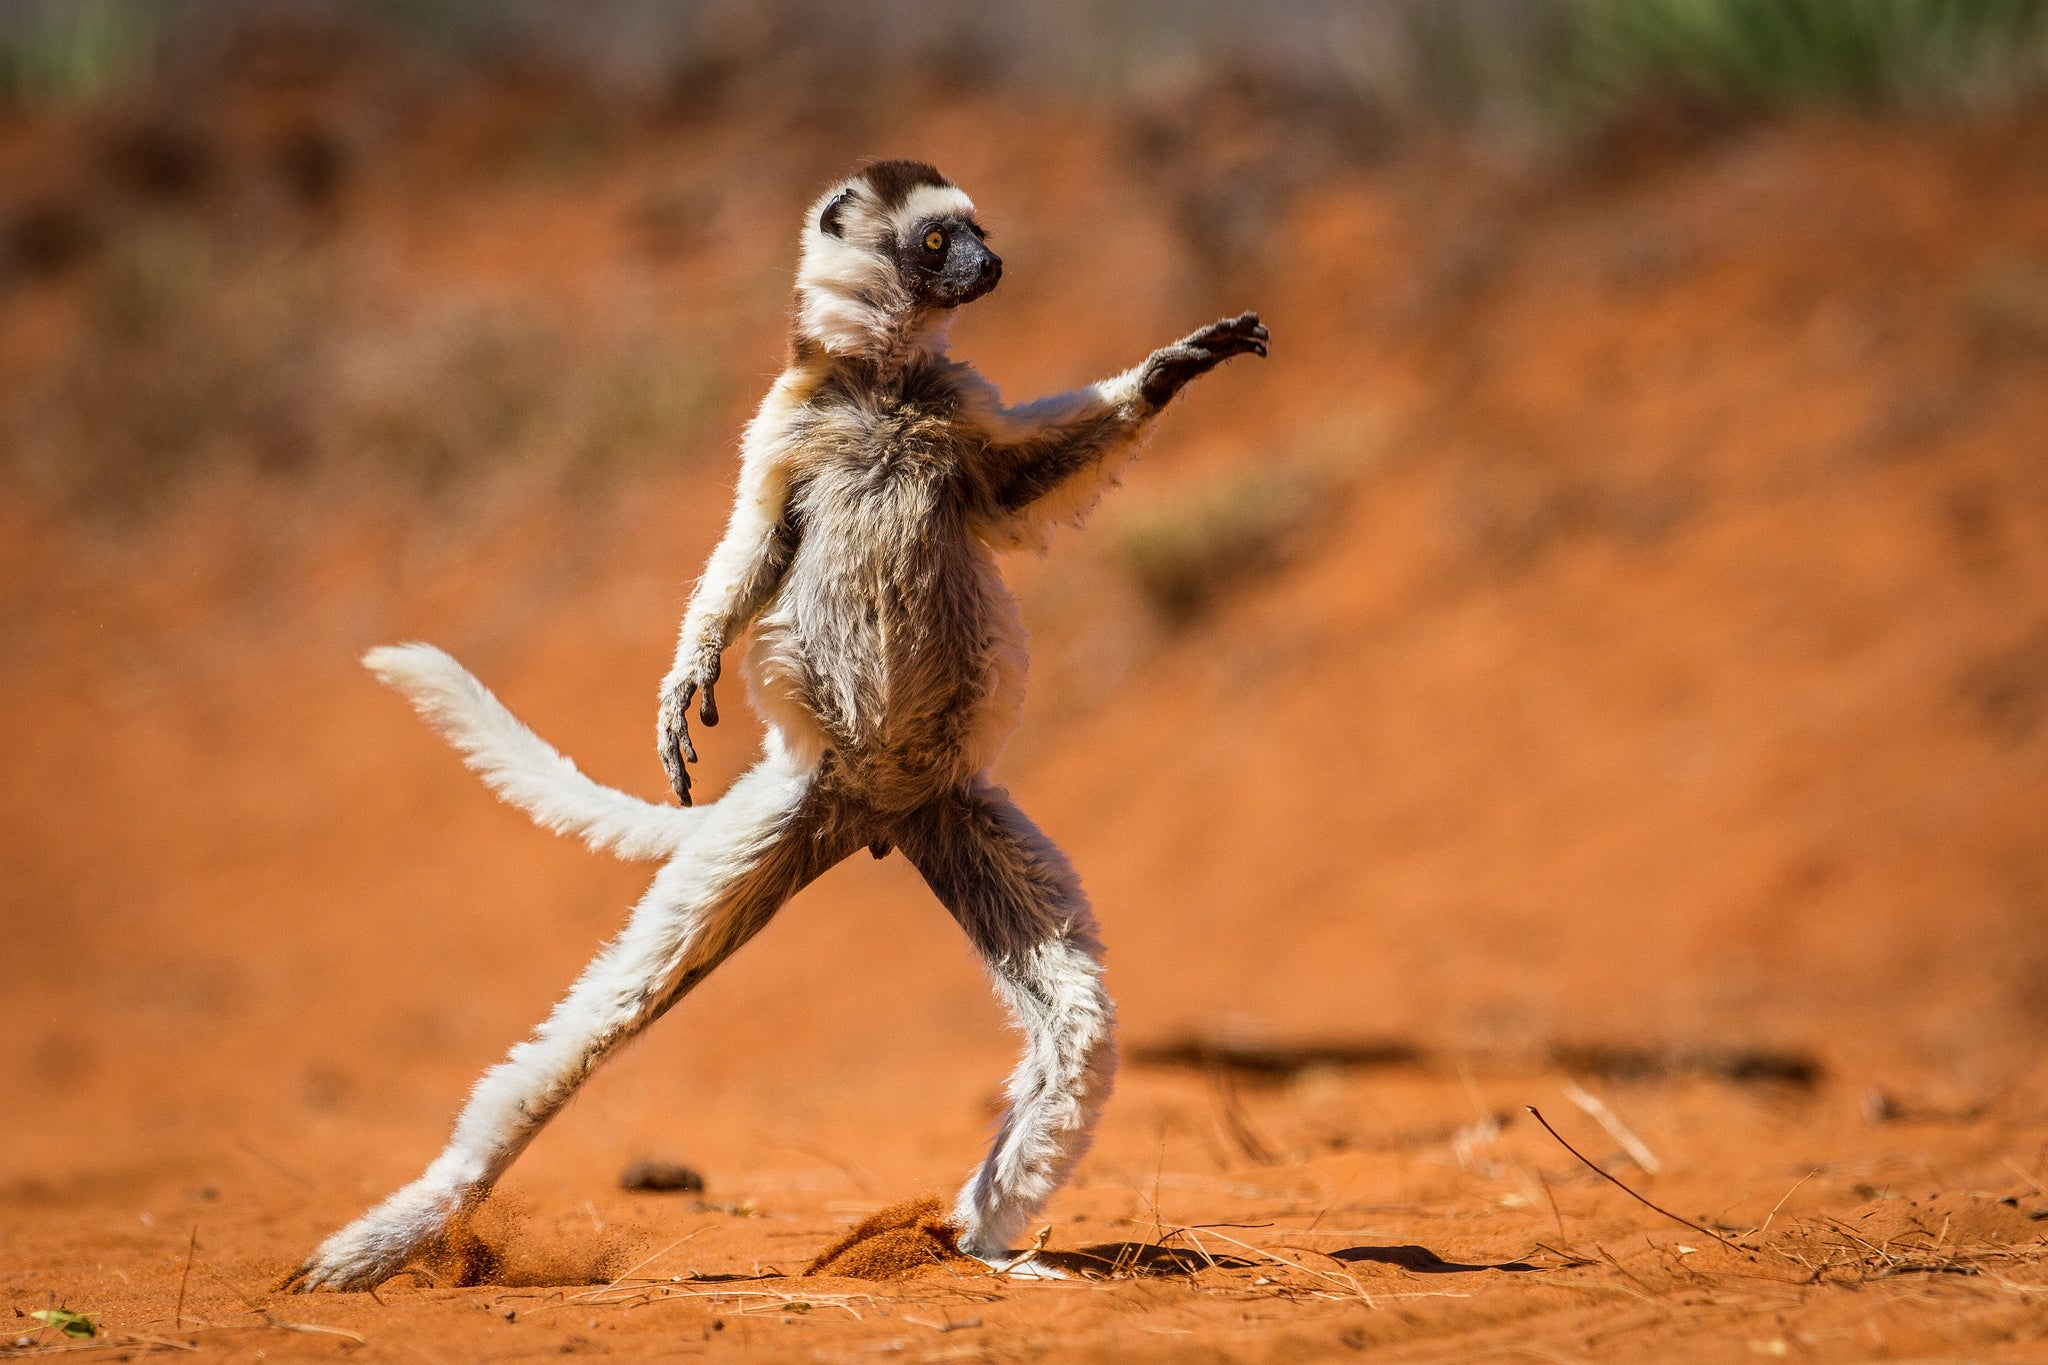 These Are the Winners of the 2015 Comedy Wildlife Awards